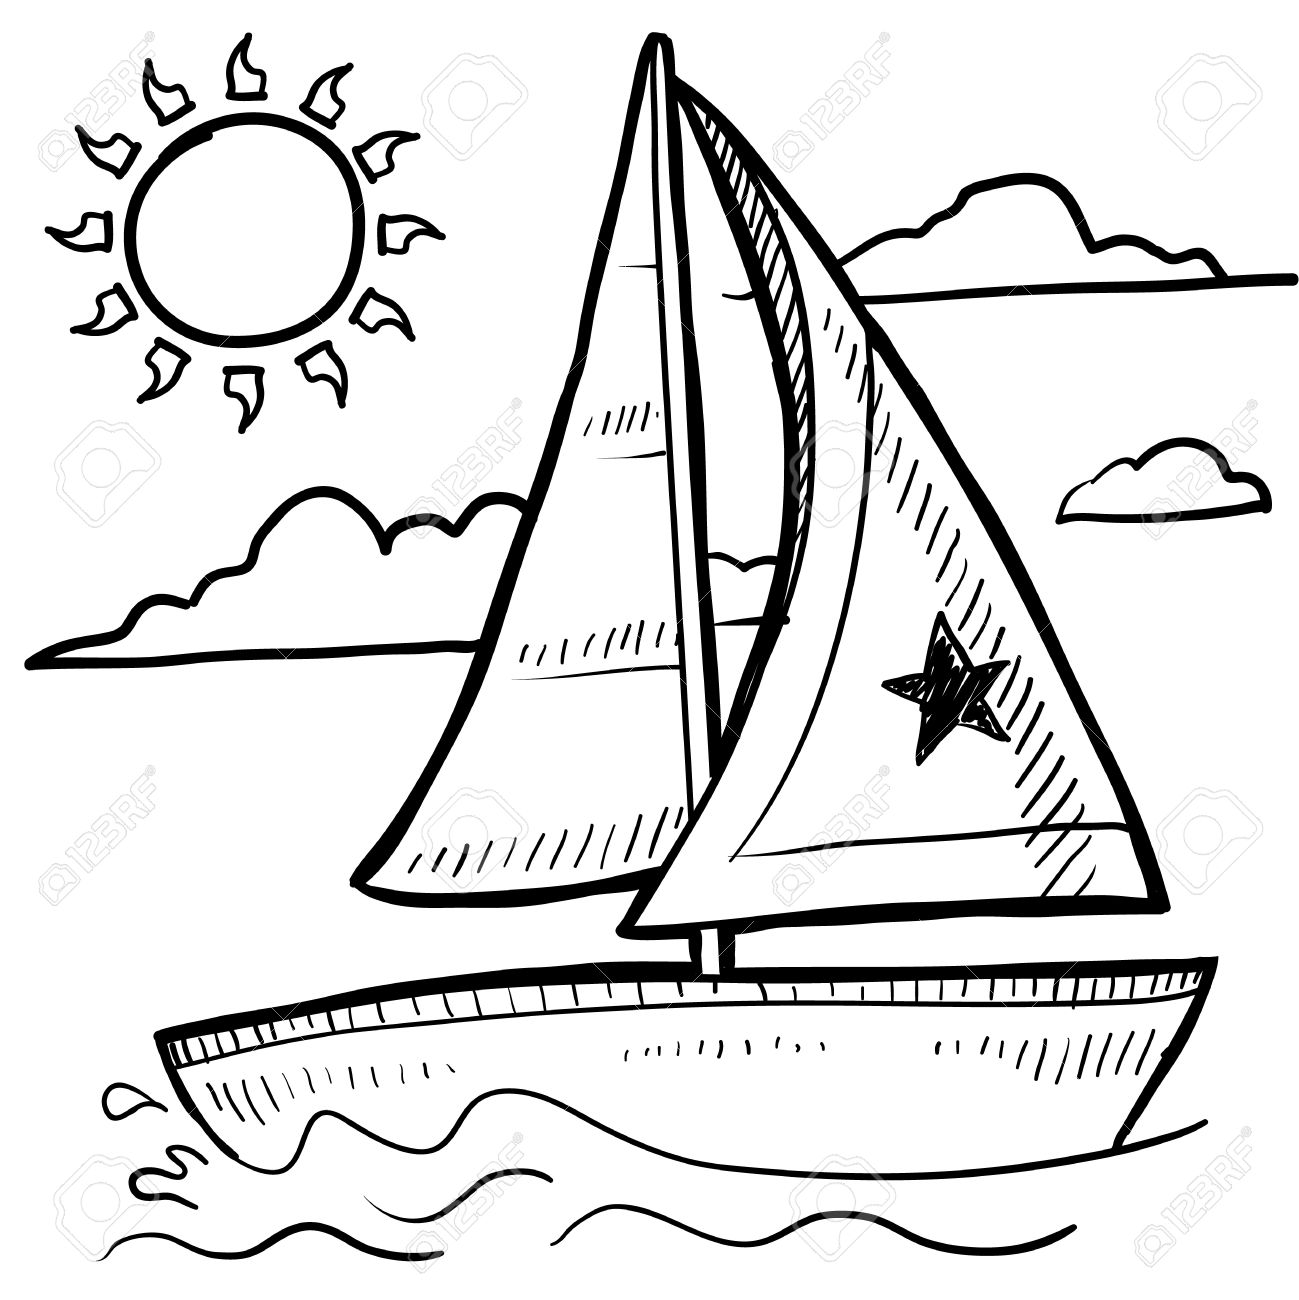 1299x1300 Doodle Style Sketch Of A Sailboat Vacation In Illustration Royalty